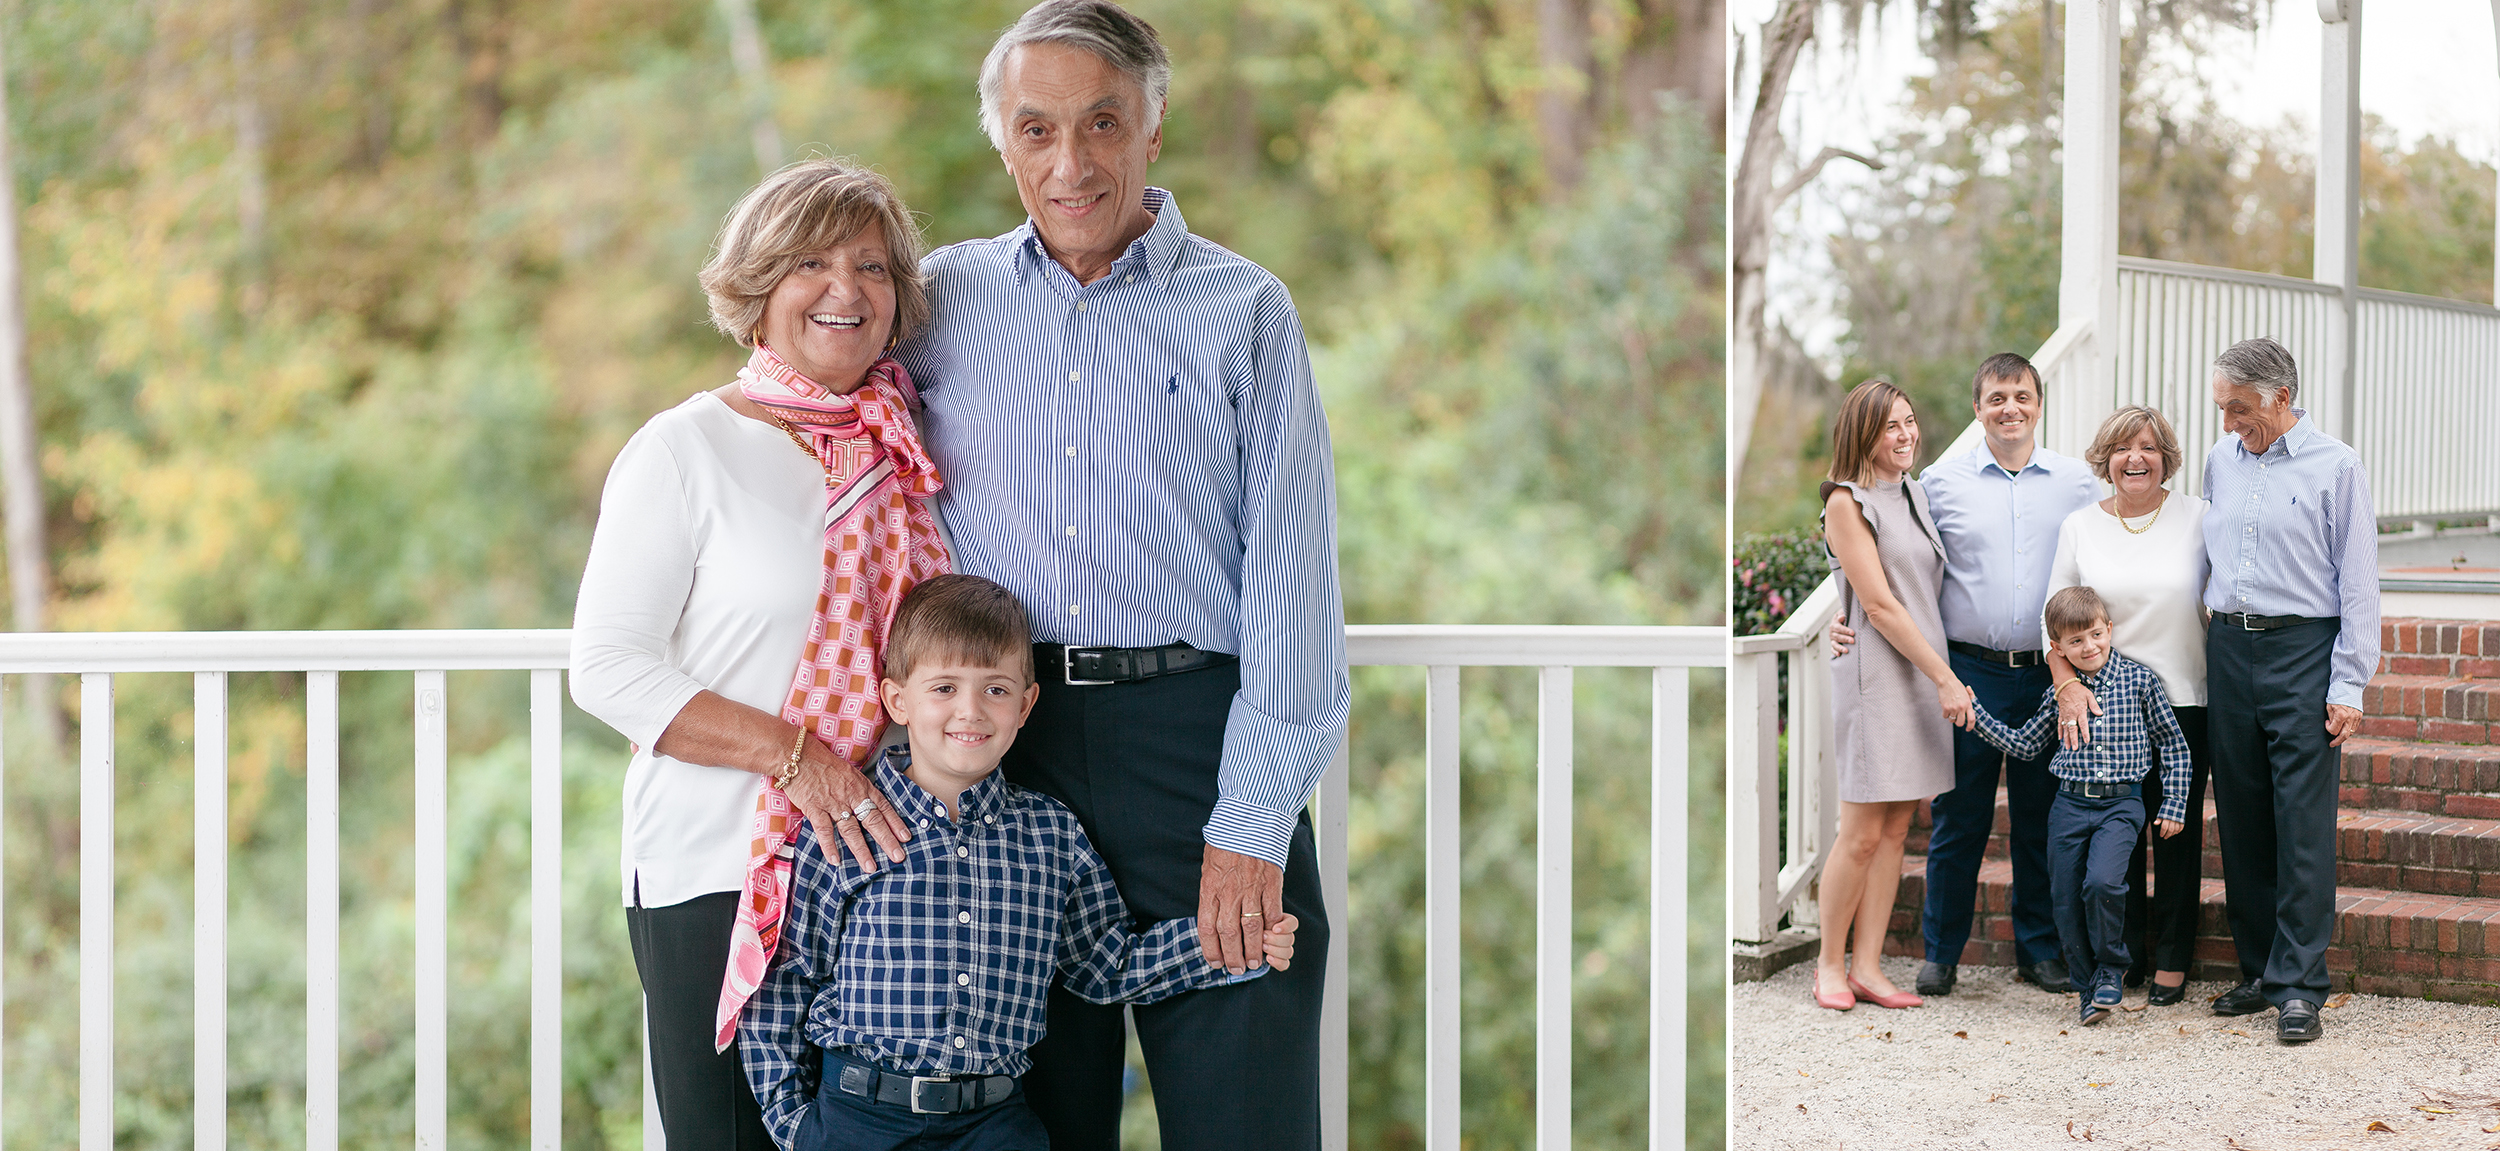 Sarah Mesa Photography | Augusta Family Photographer